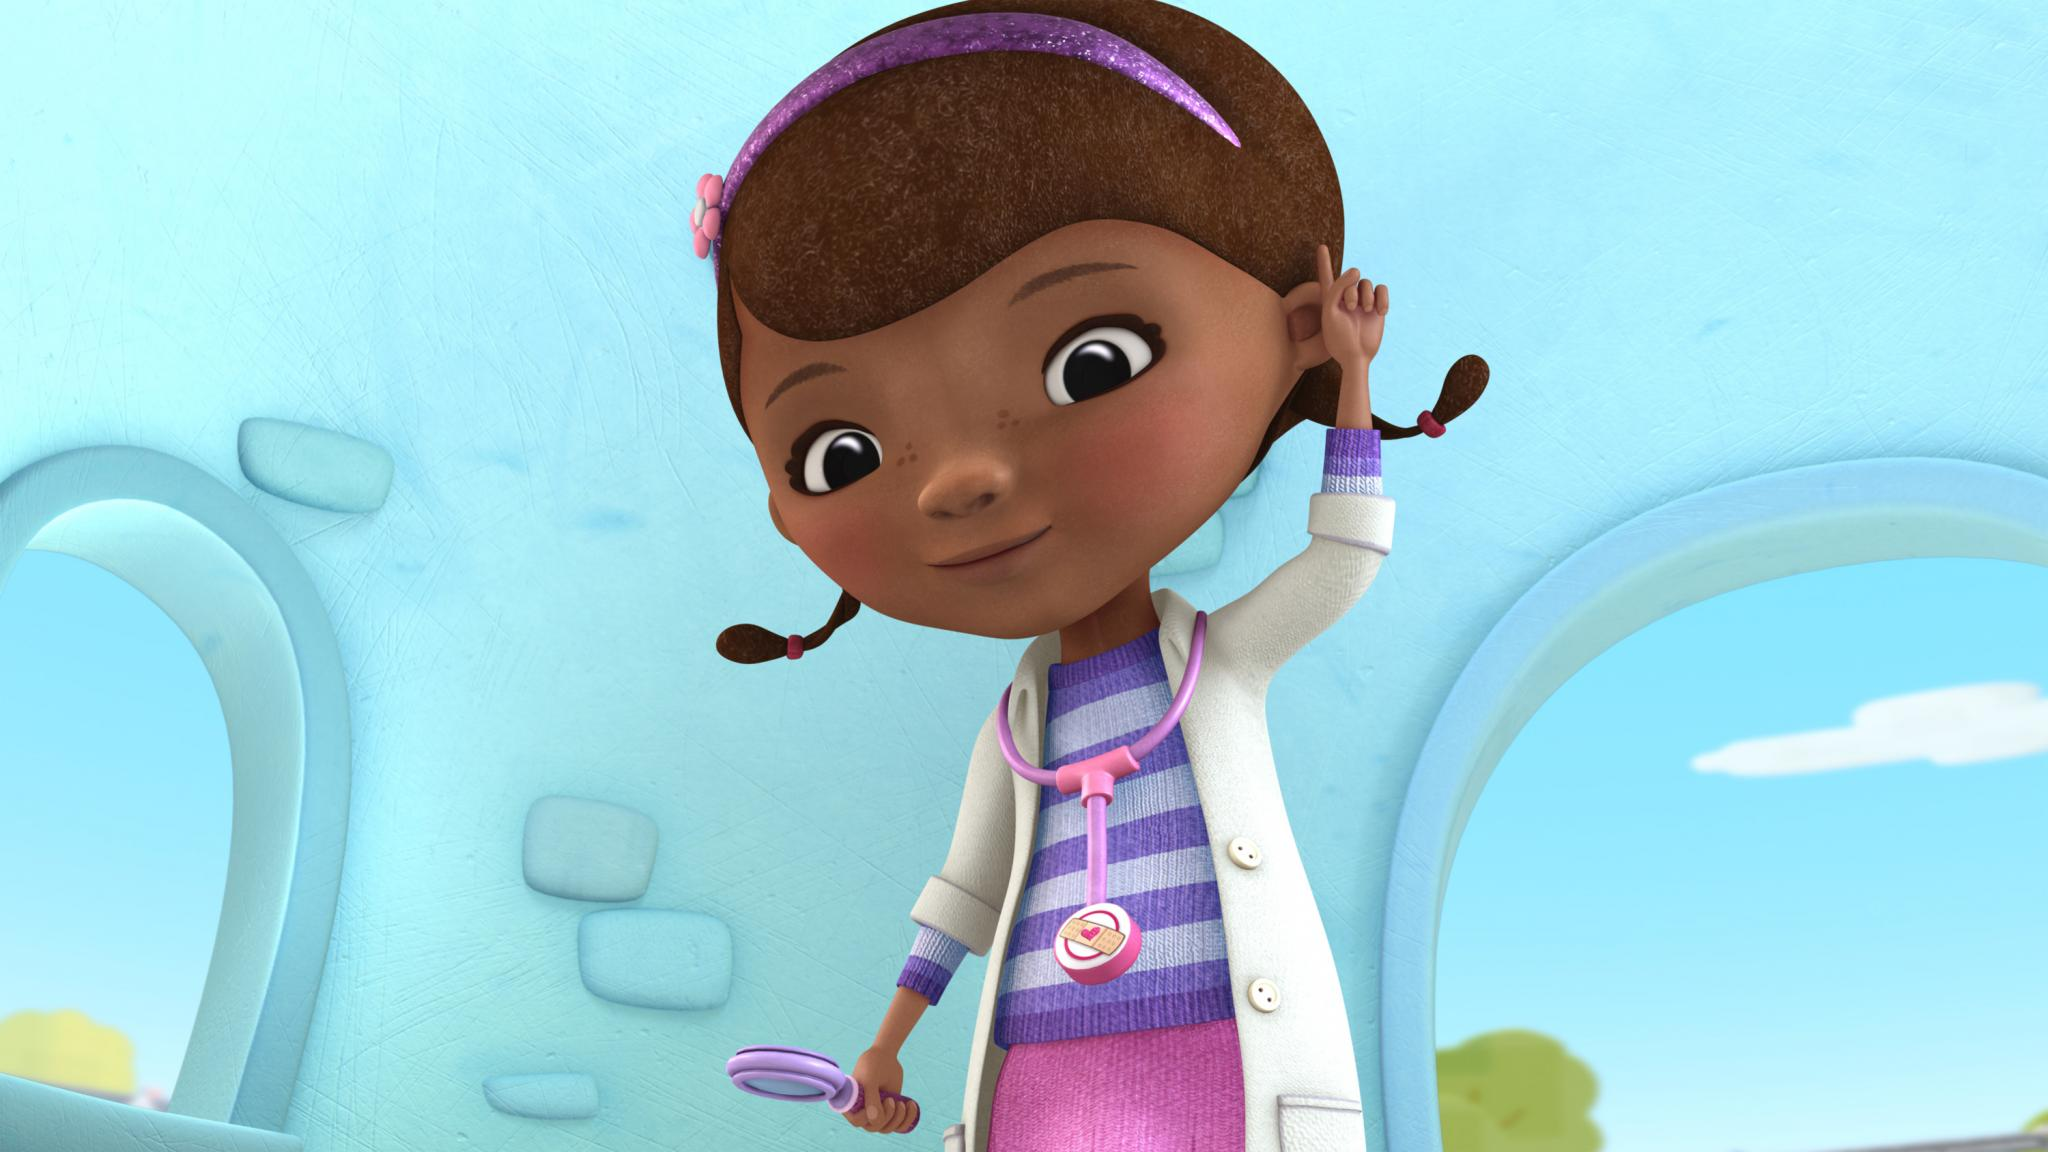 Doc McStuffins Embraces Her Natural Hair—The Cutest Episode Ever!